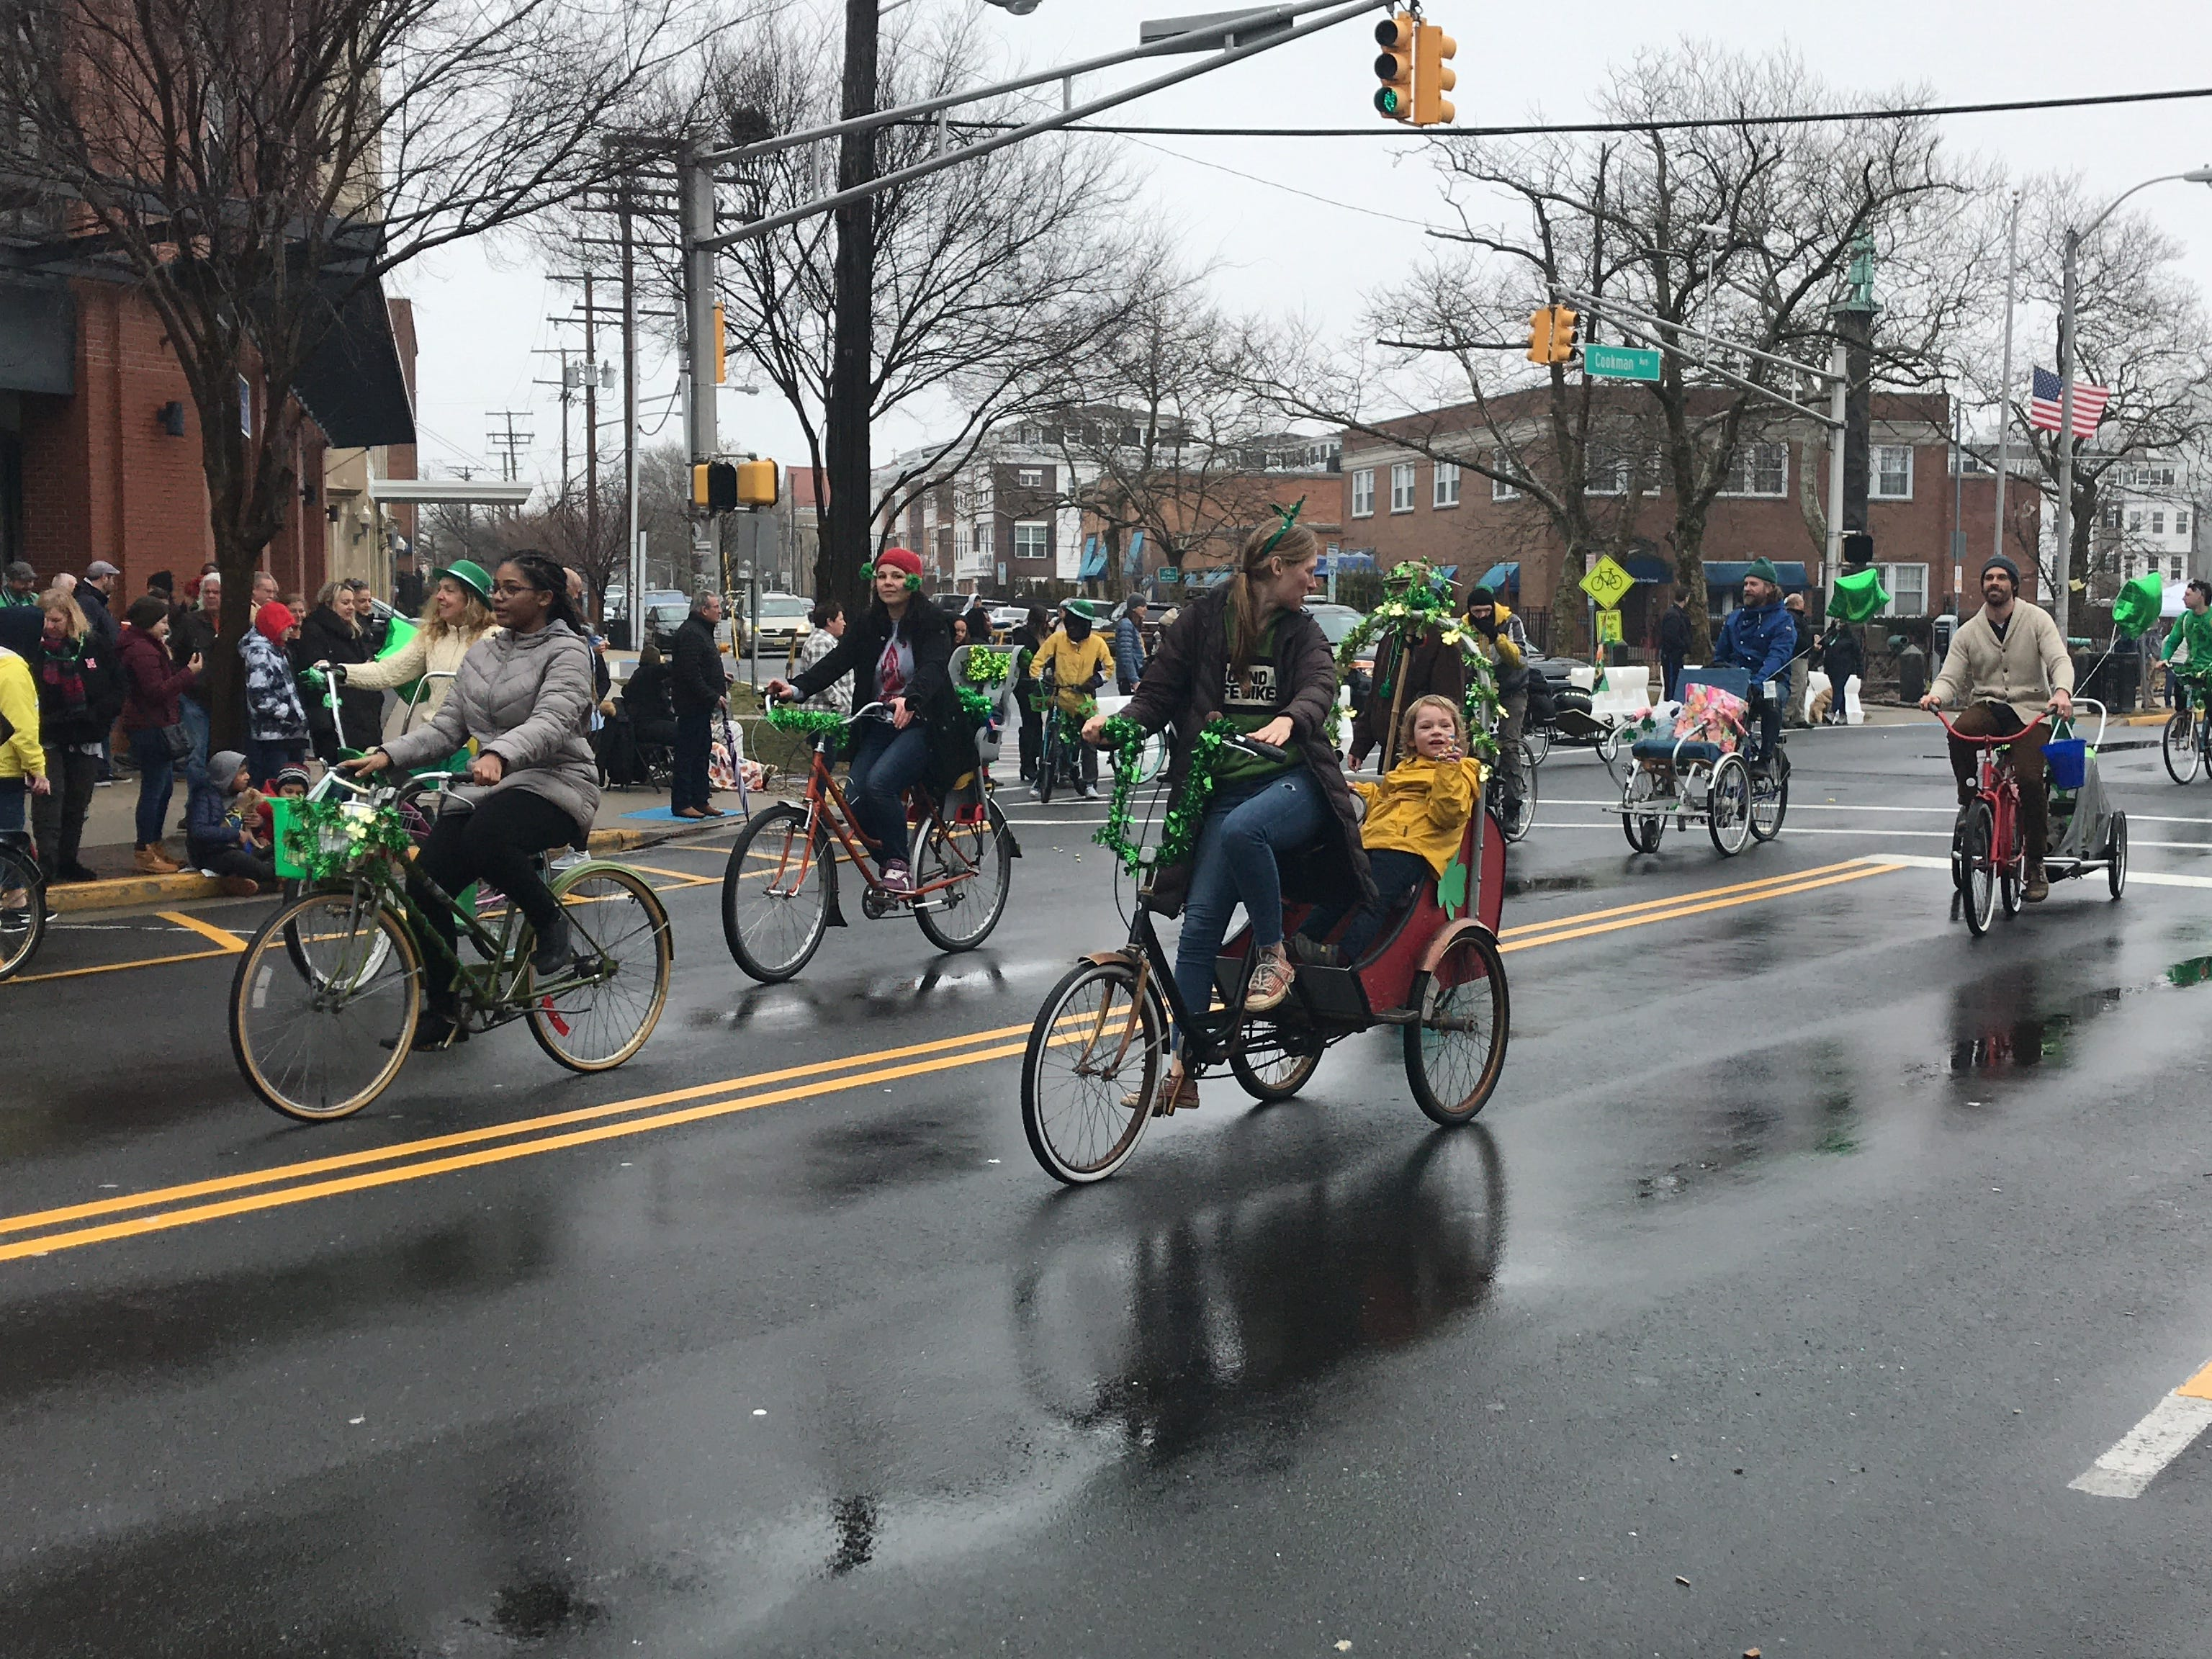 Scenes from the St. Patrick's Day Parade in Asbury Park on March 10, 2019.